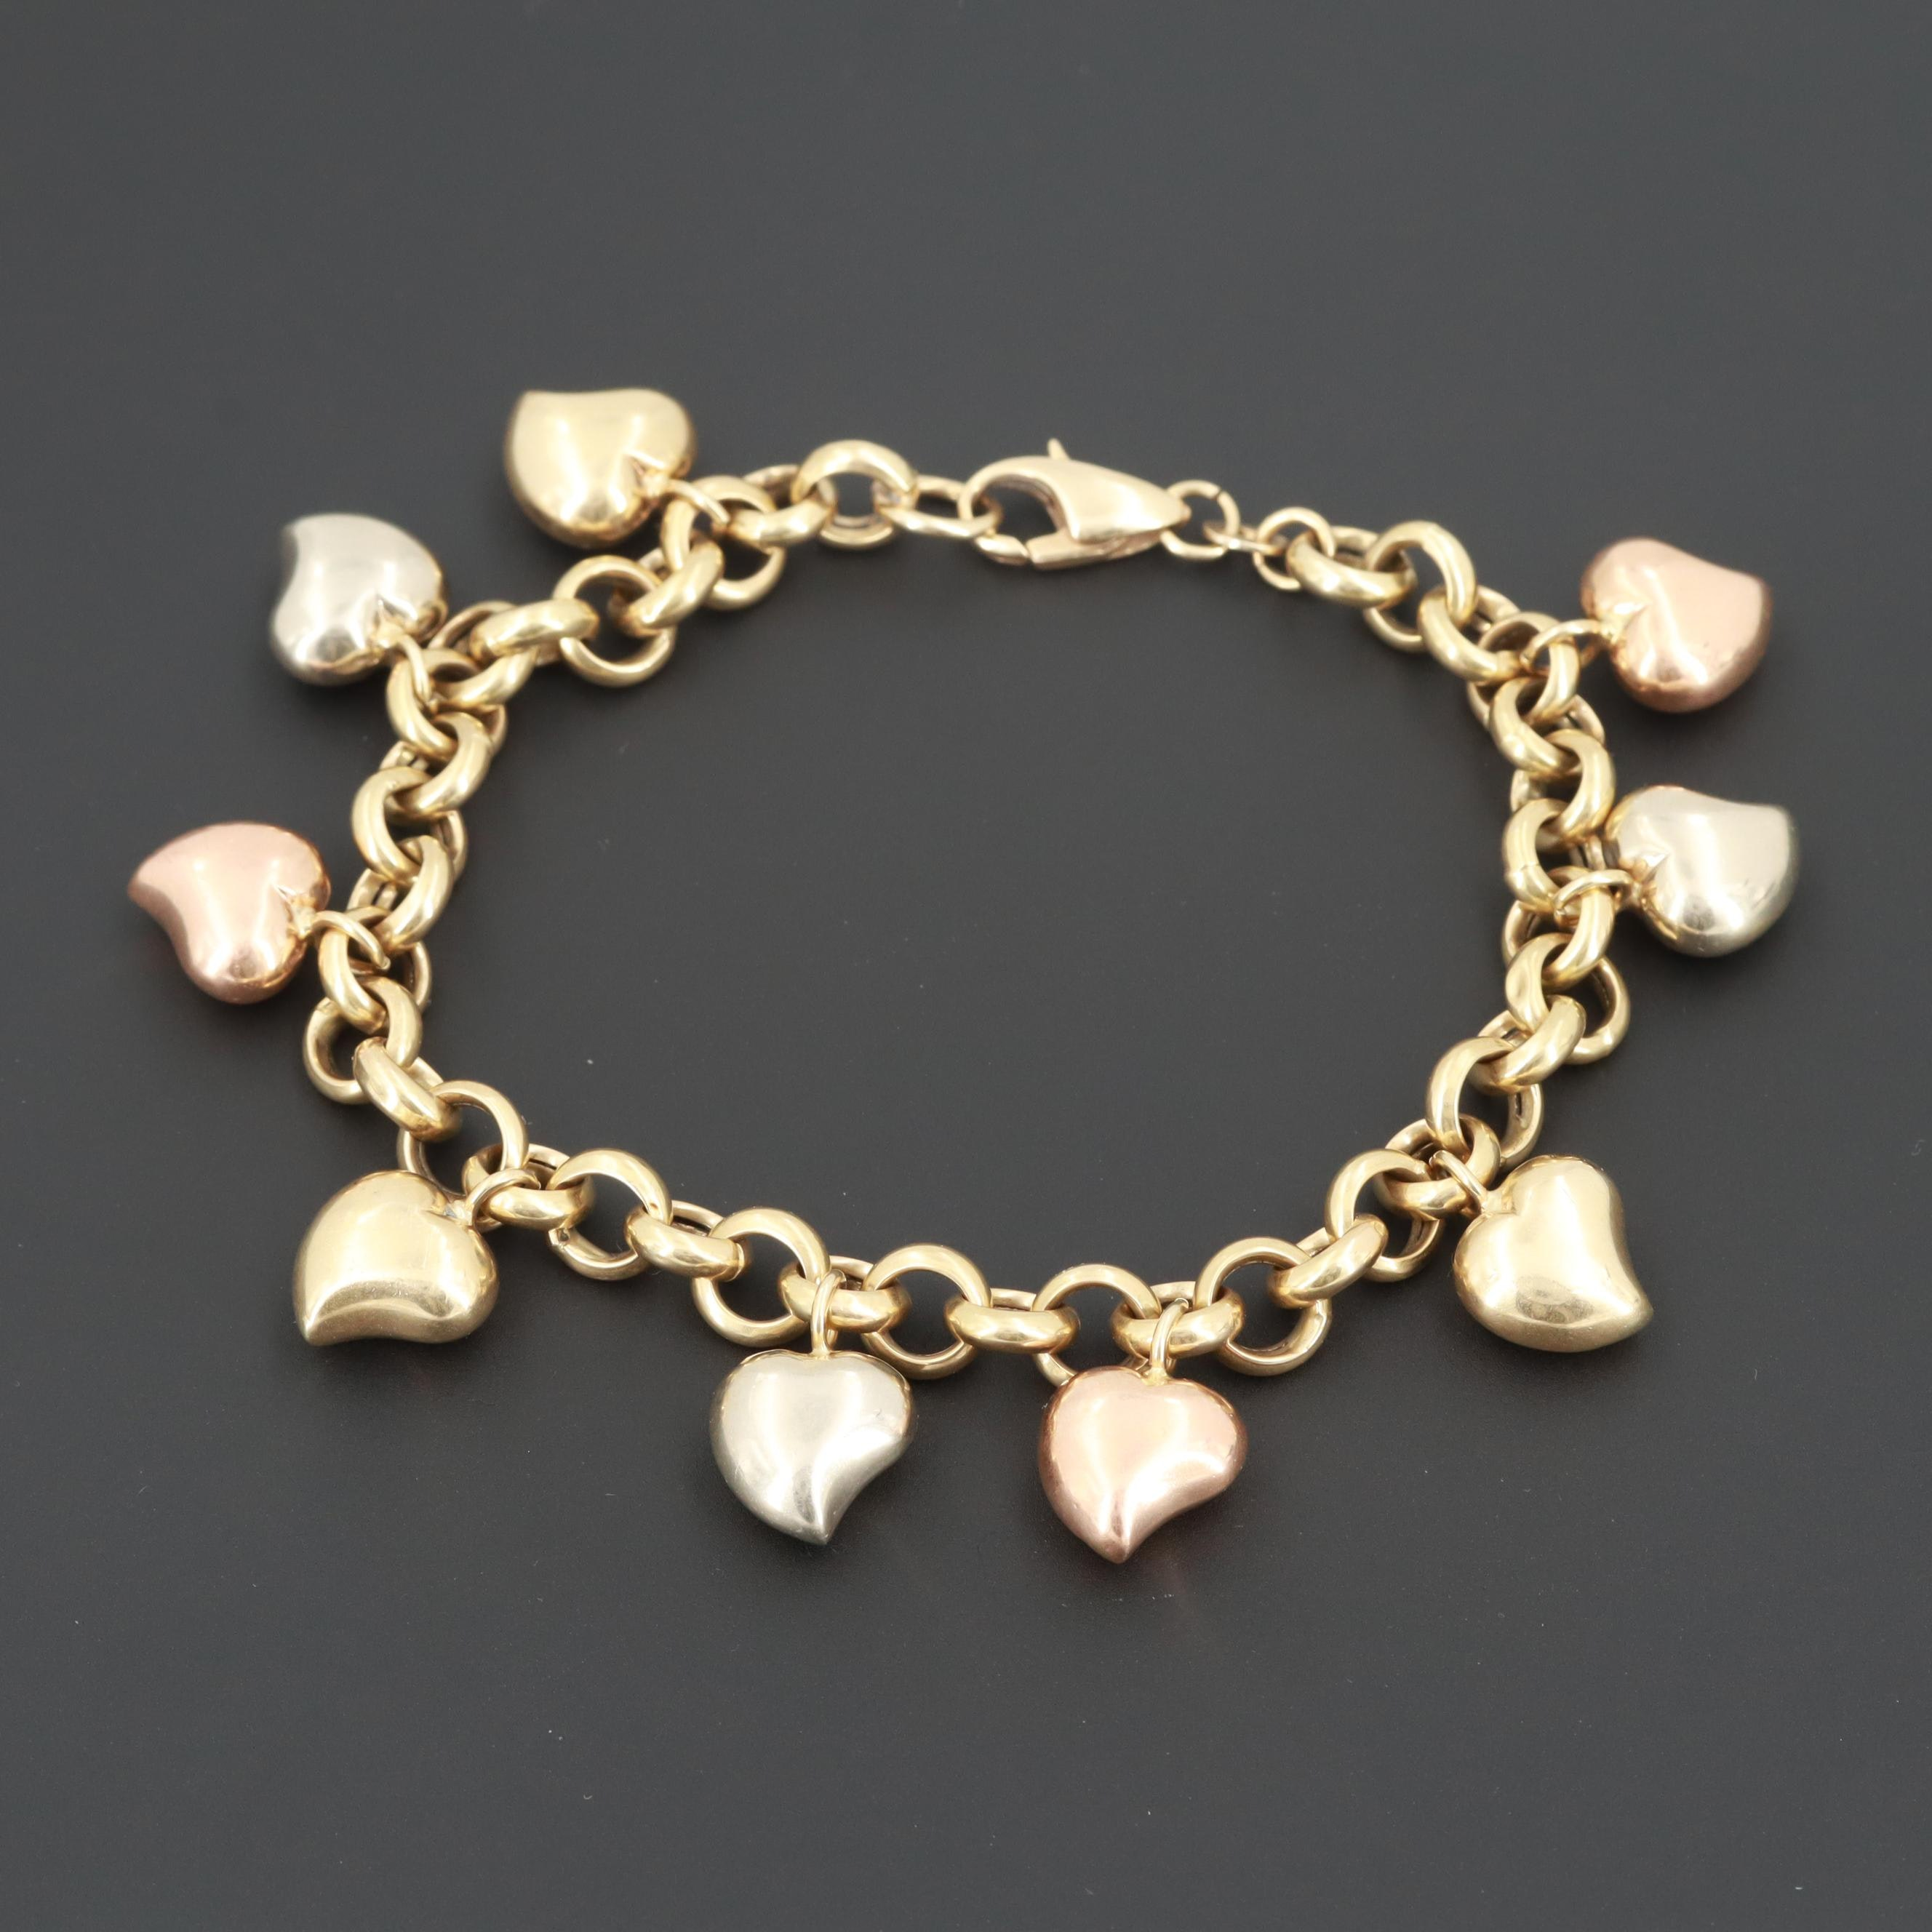 Italian 14K Yellow Gold Puffy Heart Bracelet with White and Rose Gold Charms